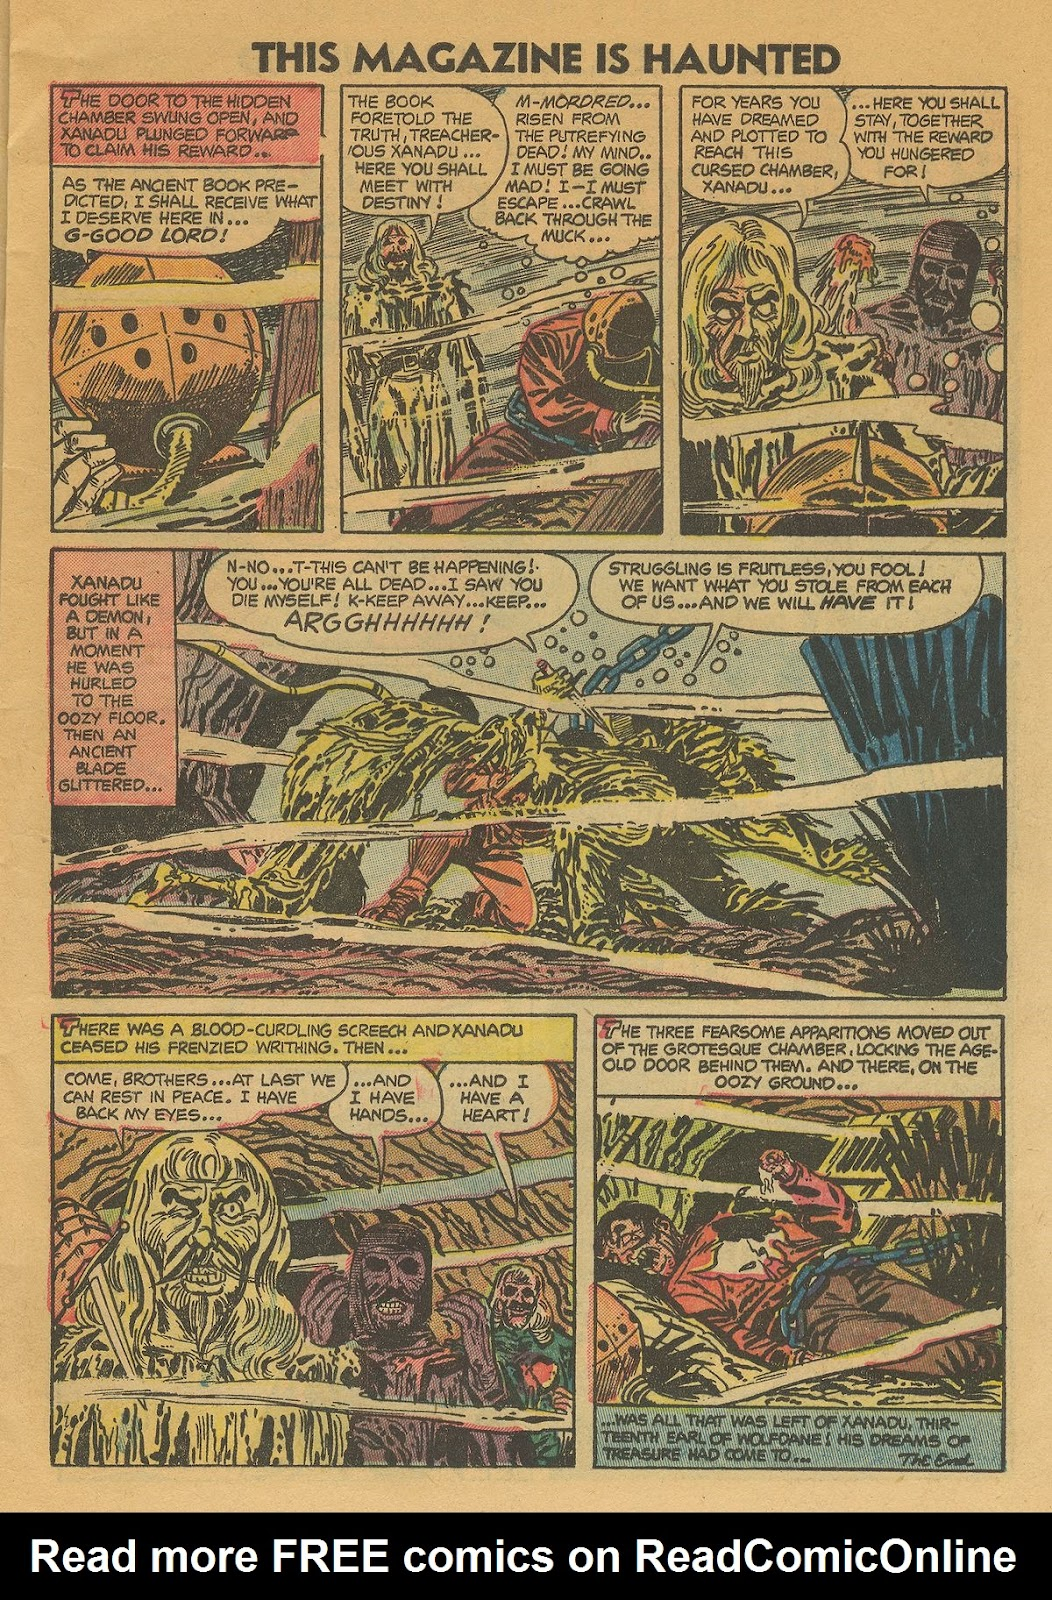 Read online This Magazine Is Haunted comic -  Issue #18 - 9